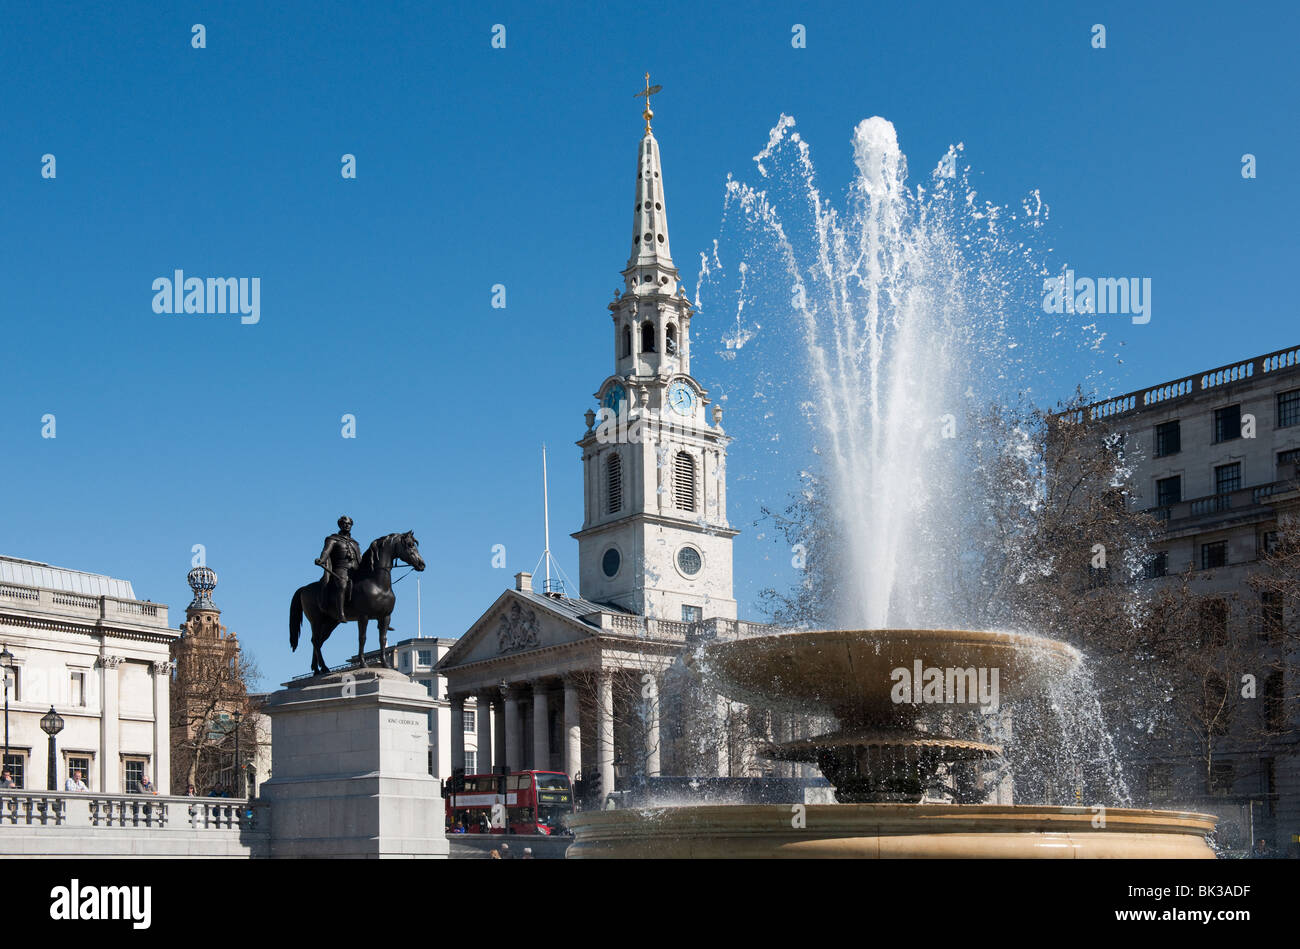 Saint Martin's in the Fields, Fountain & Statue of King George IV in Trafalgar Square London - Stock Image